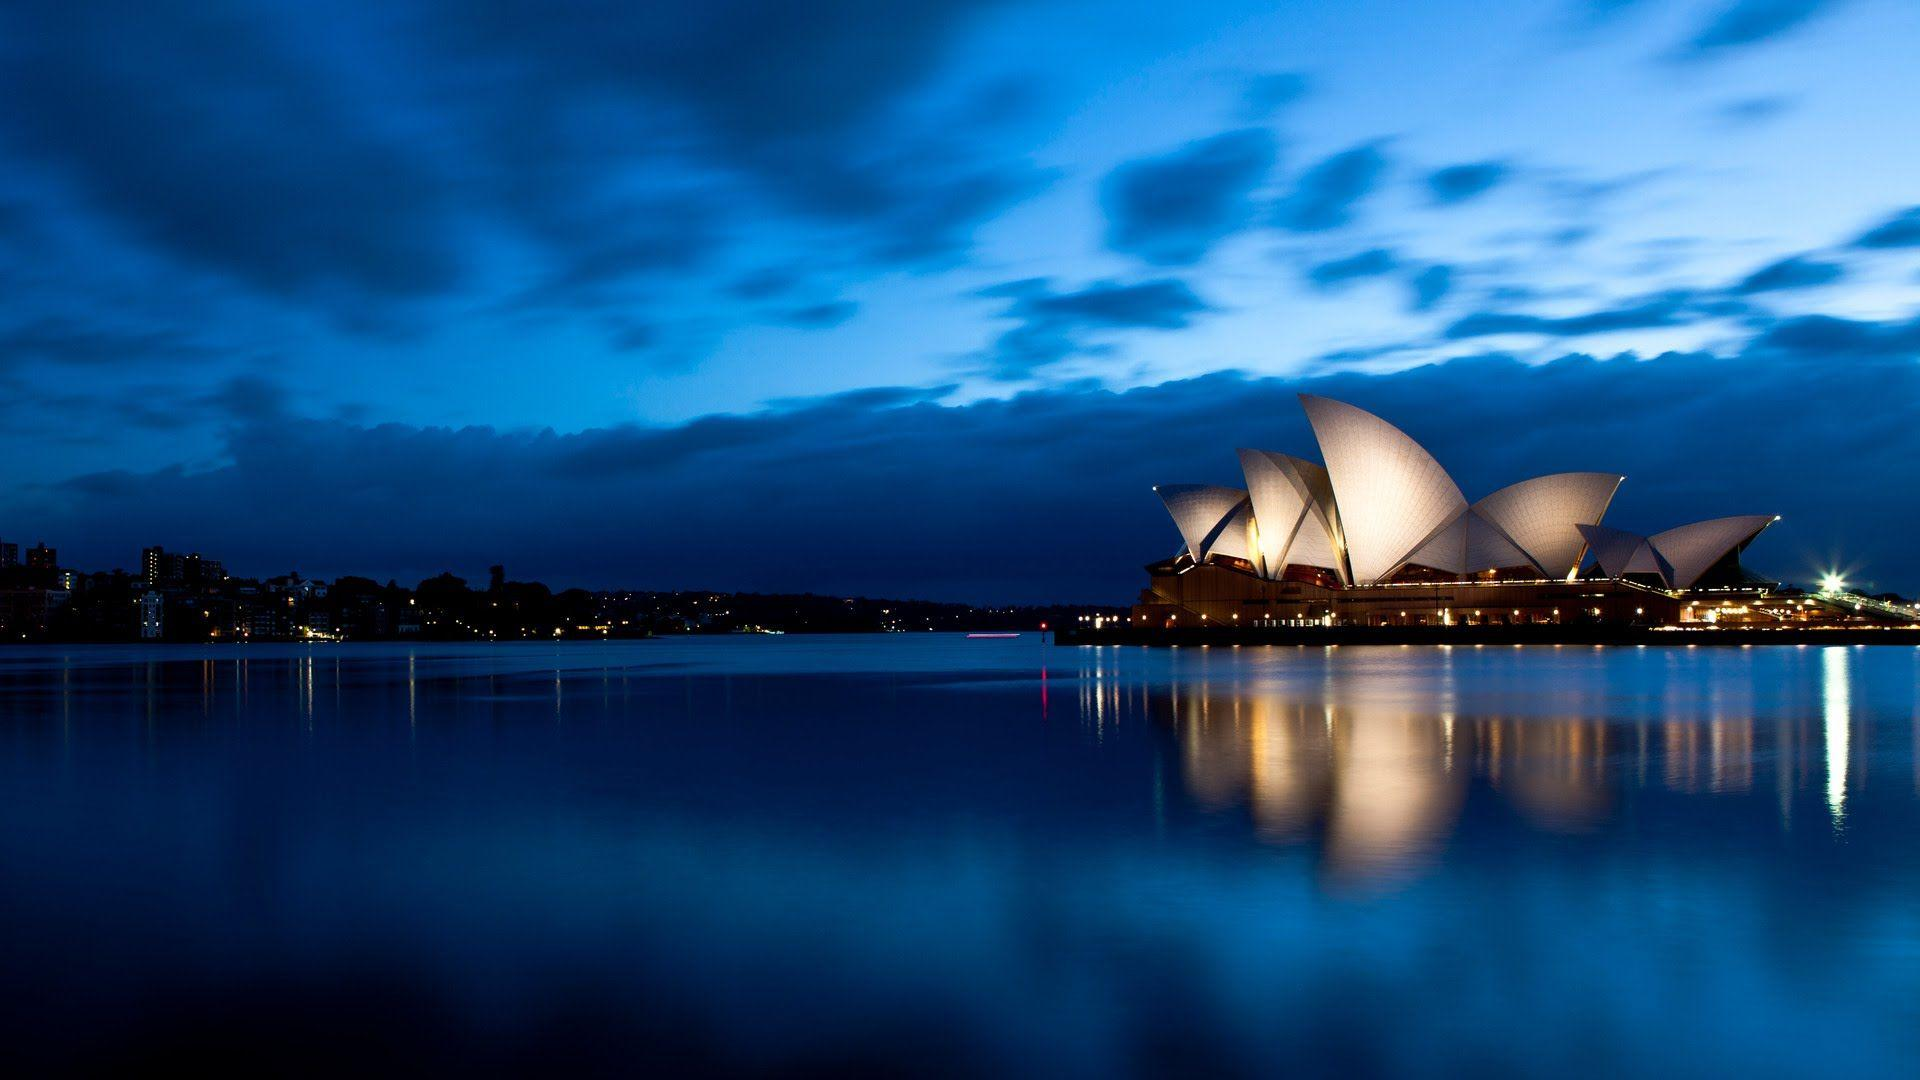 Opera House Sydney Beautiful Pics Images & Wallpapers |